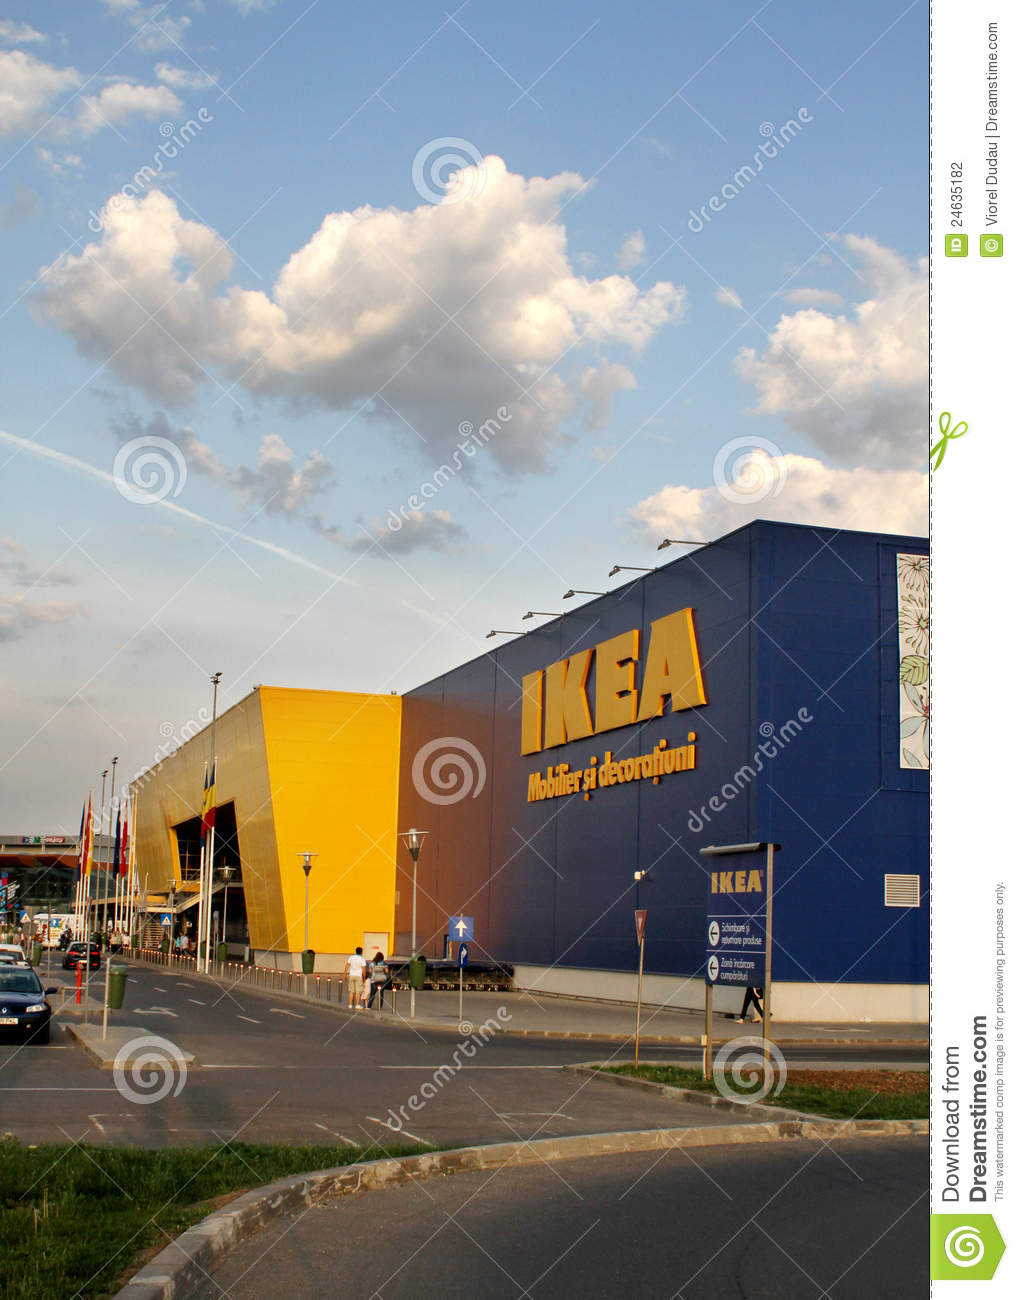 ikea store logo editorial photo 77071549. Black Bedroom Furniture Sets. Home Design Ideas